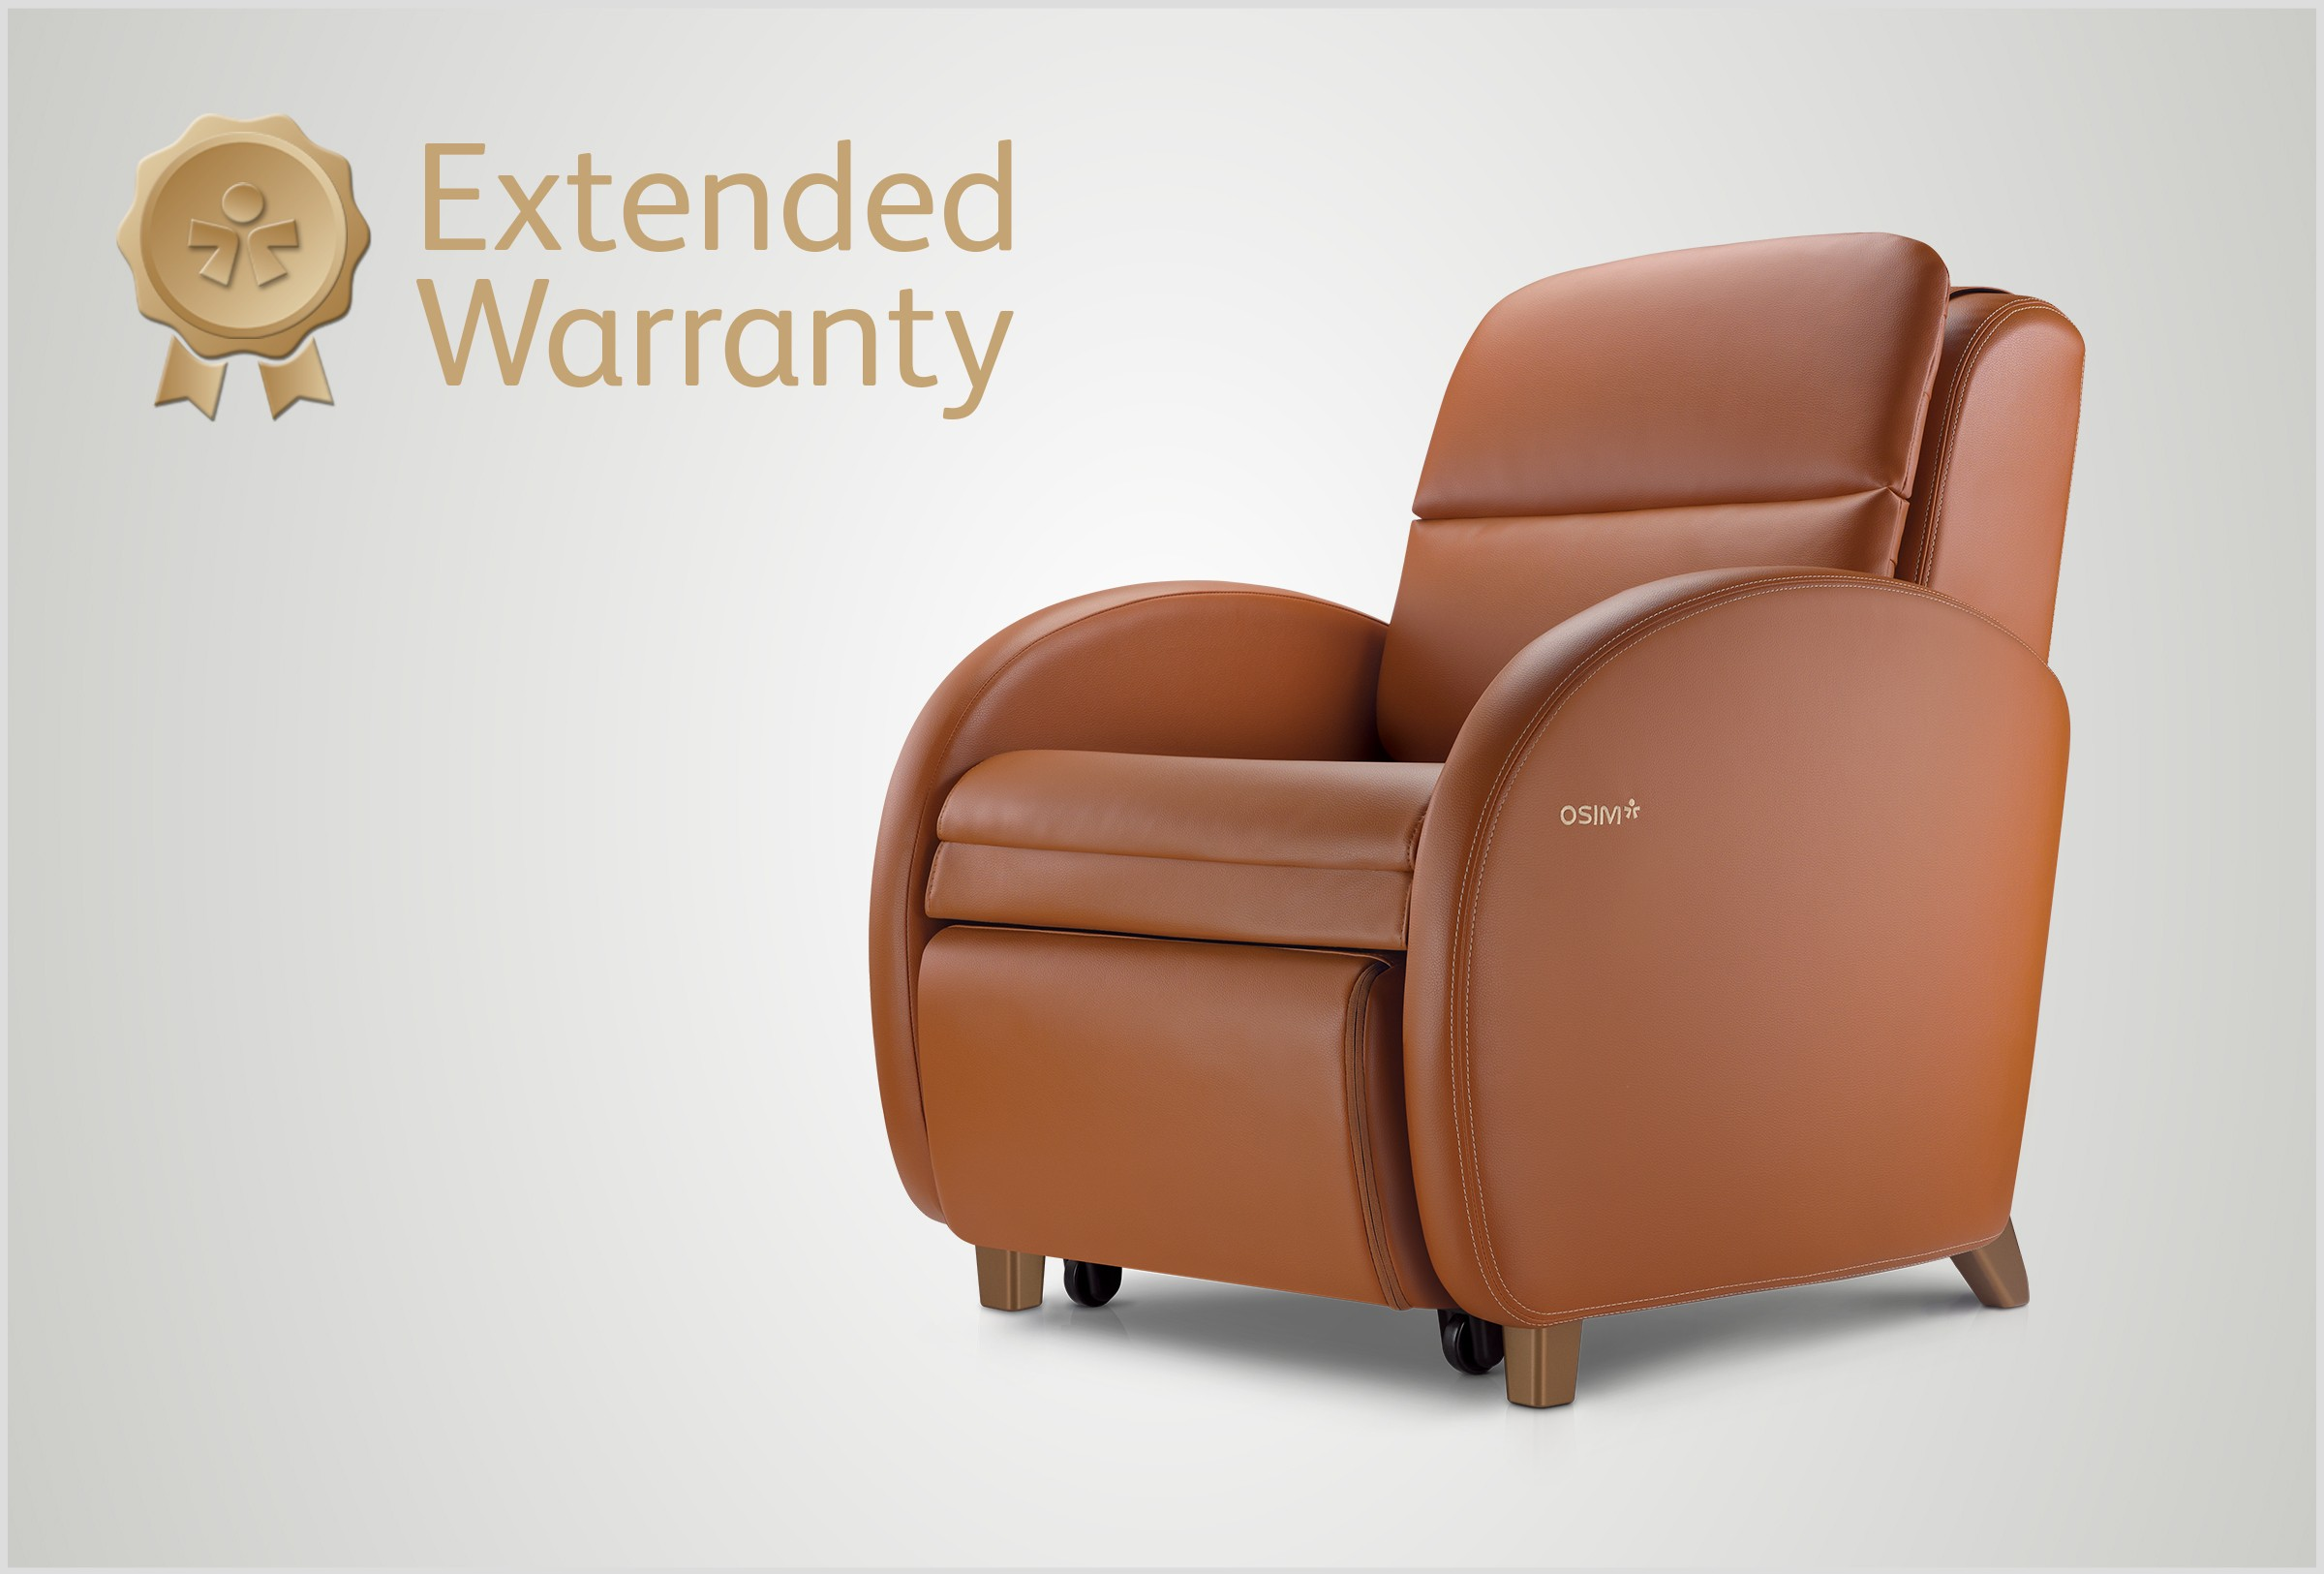 2 Years Extended Warranty uDiva Classic